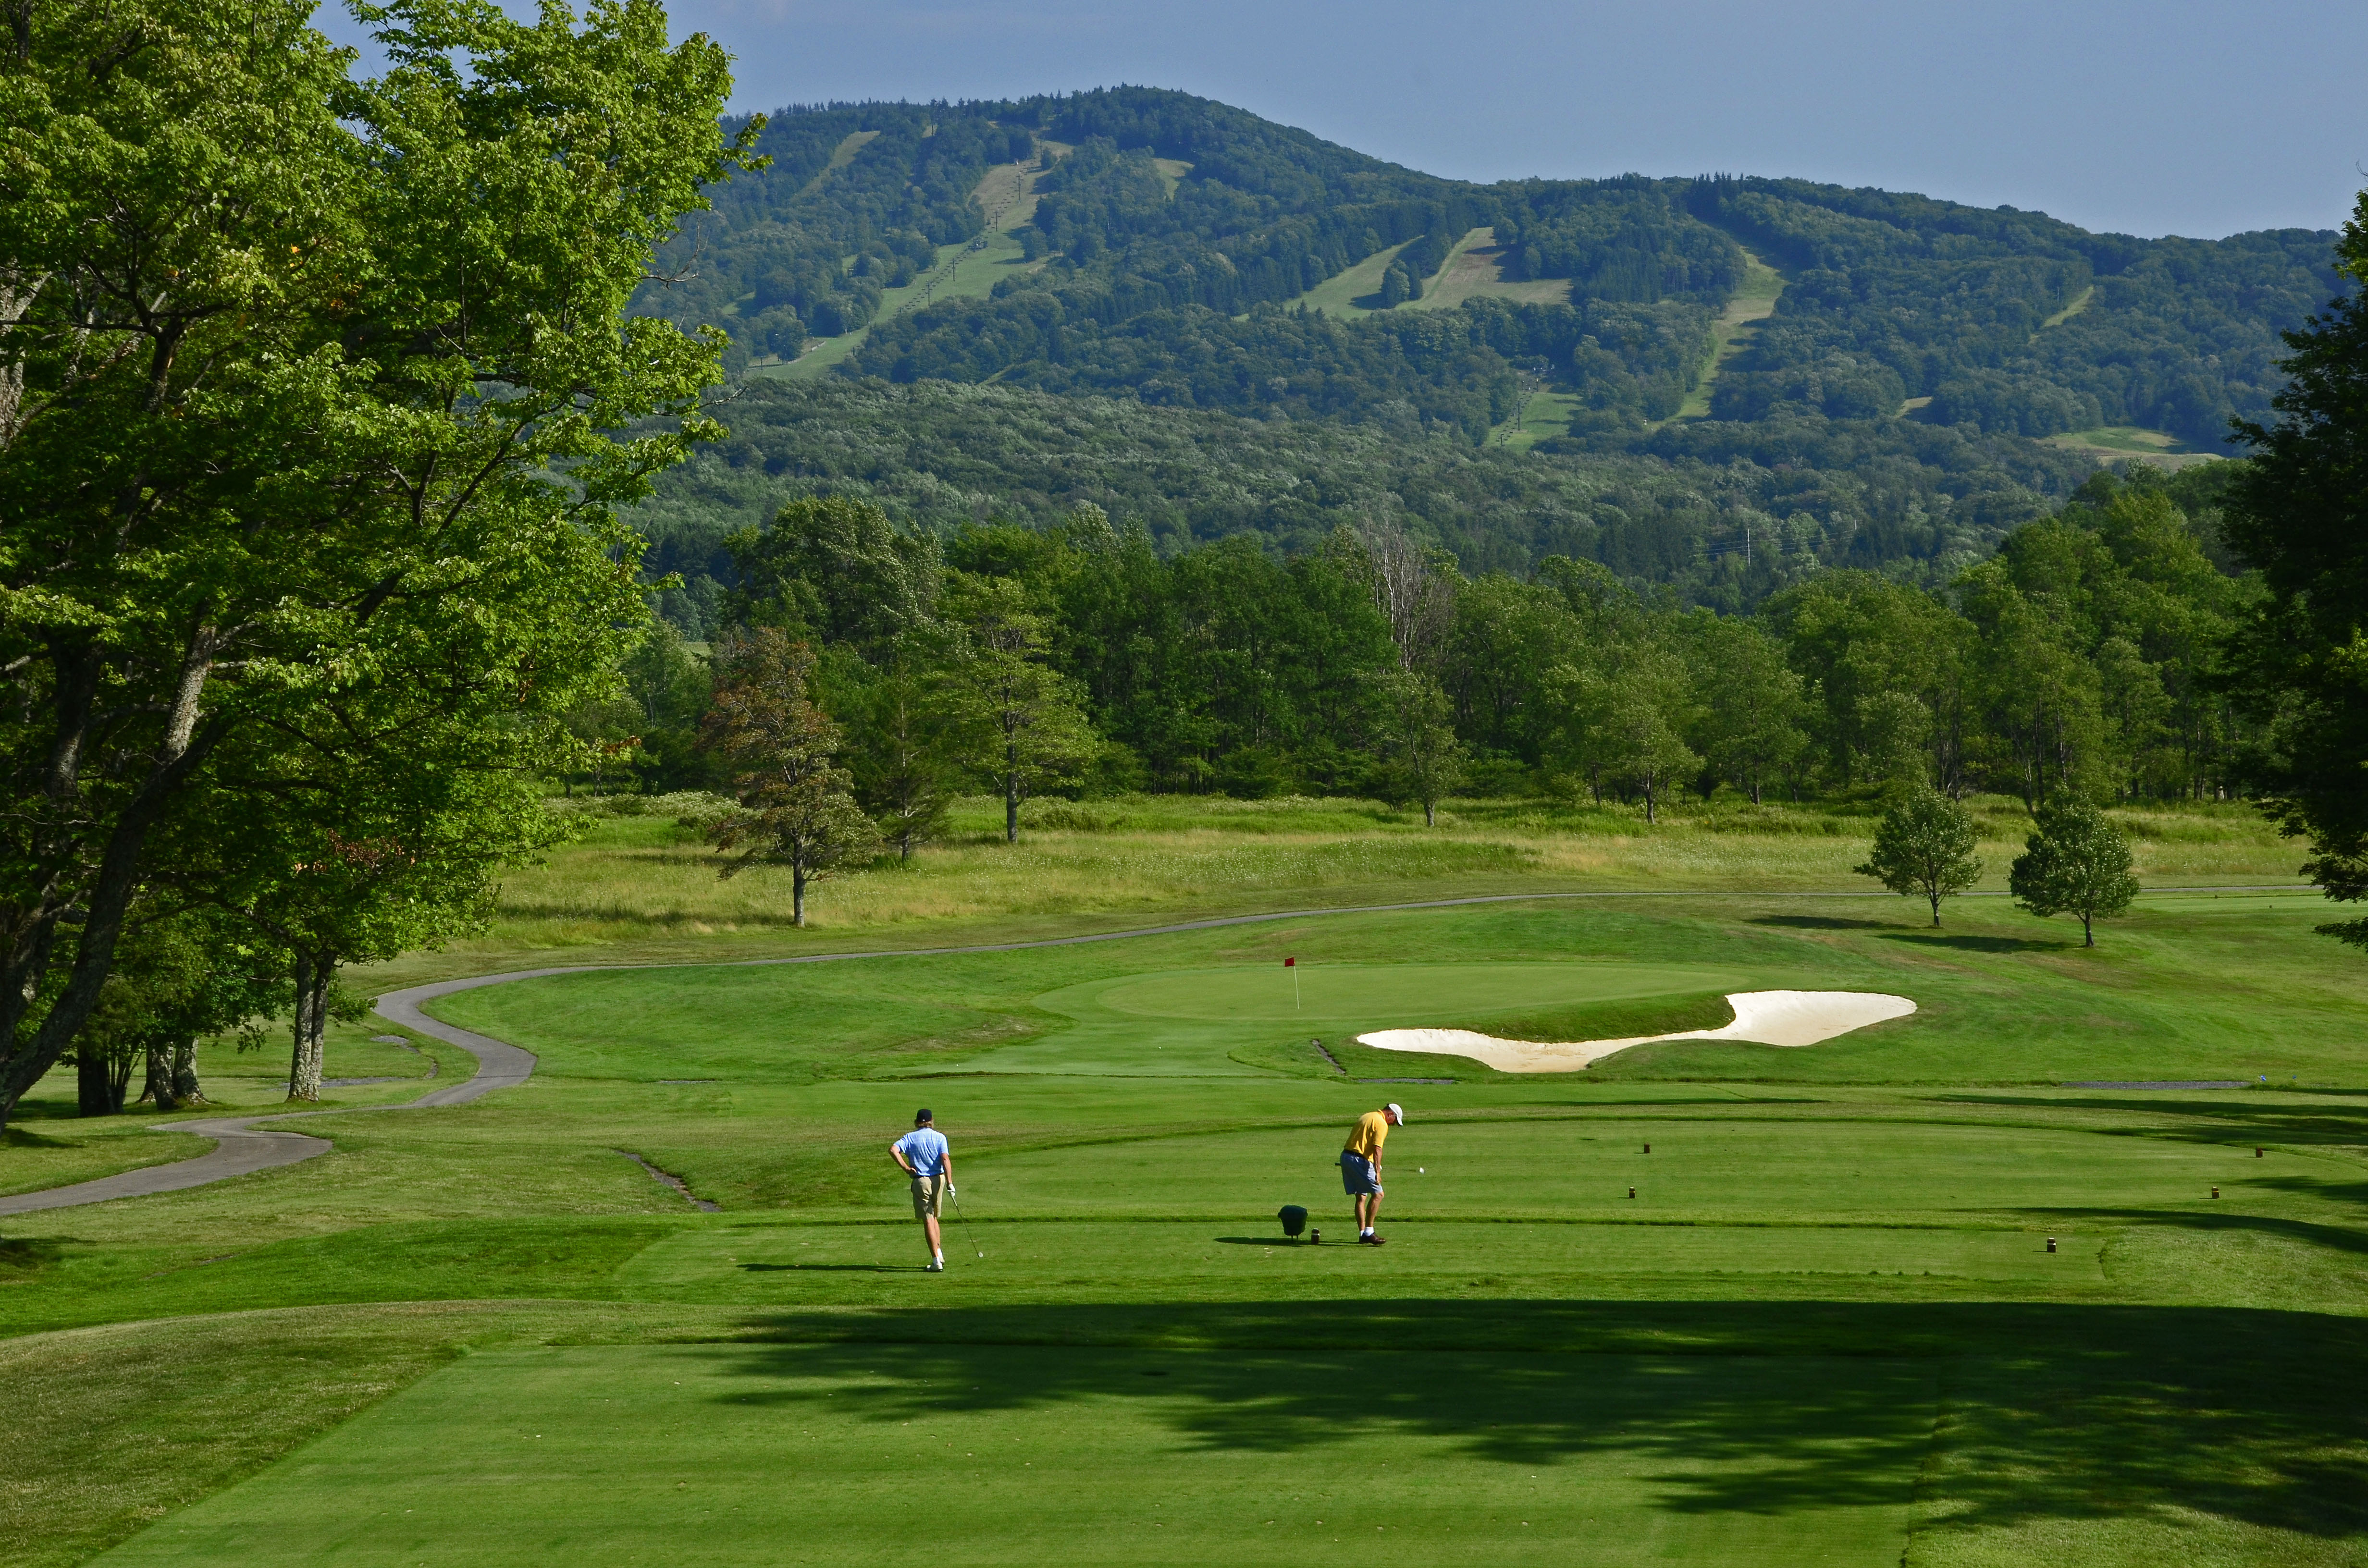 Canaan Valley Resort State Park Offers An 18 Hole Course And Overnight Golf  Packages.Canaan Valley, Tucker County, W.Va.